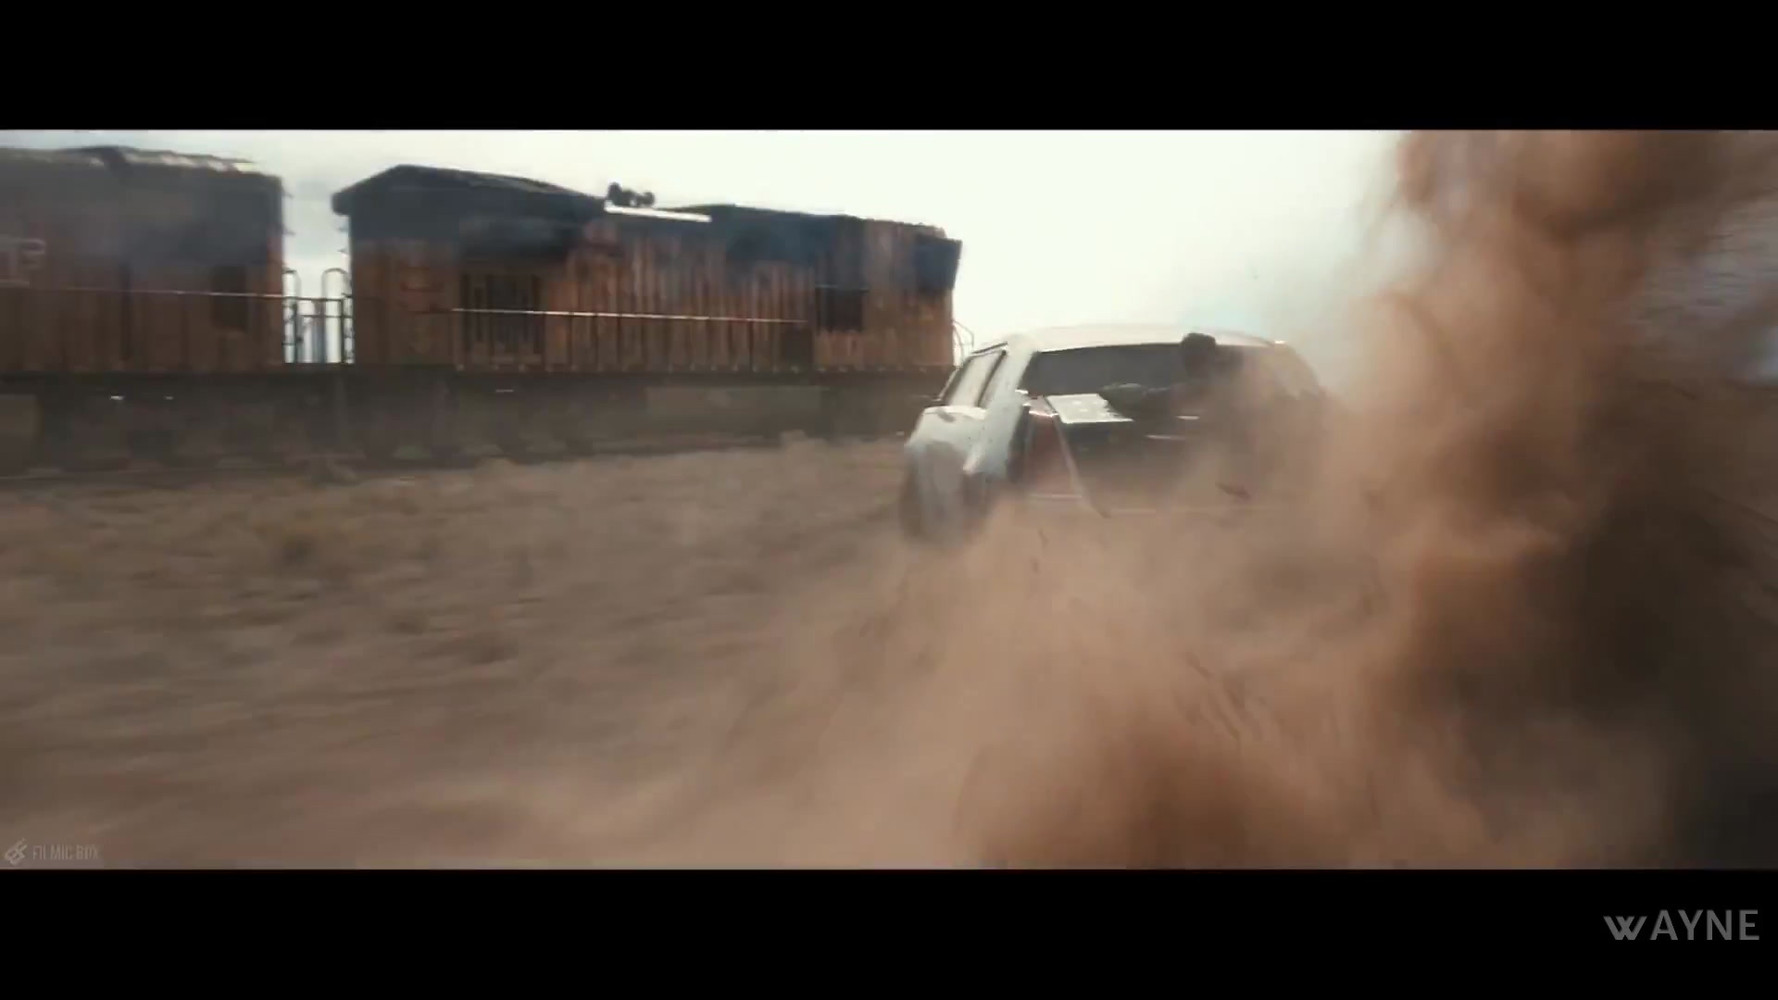 Limo Chase From Movie